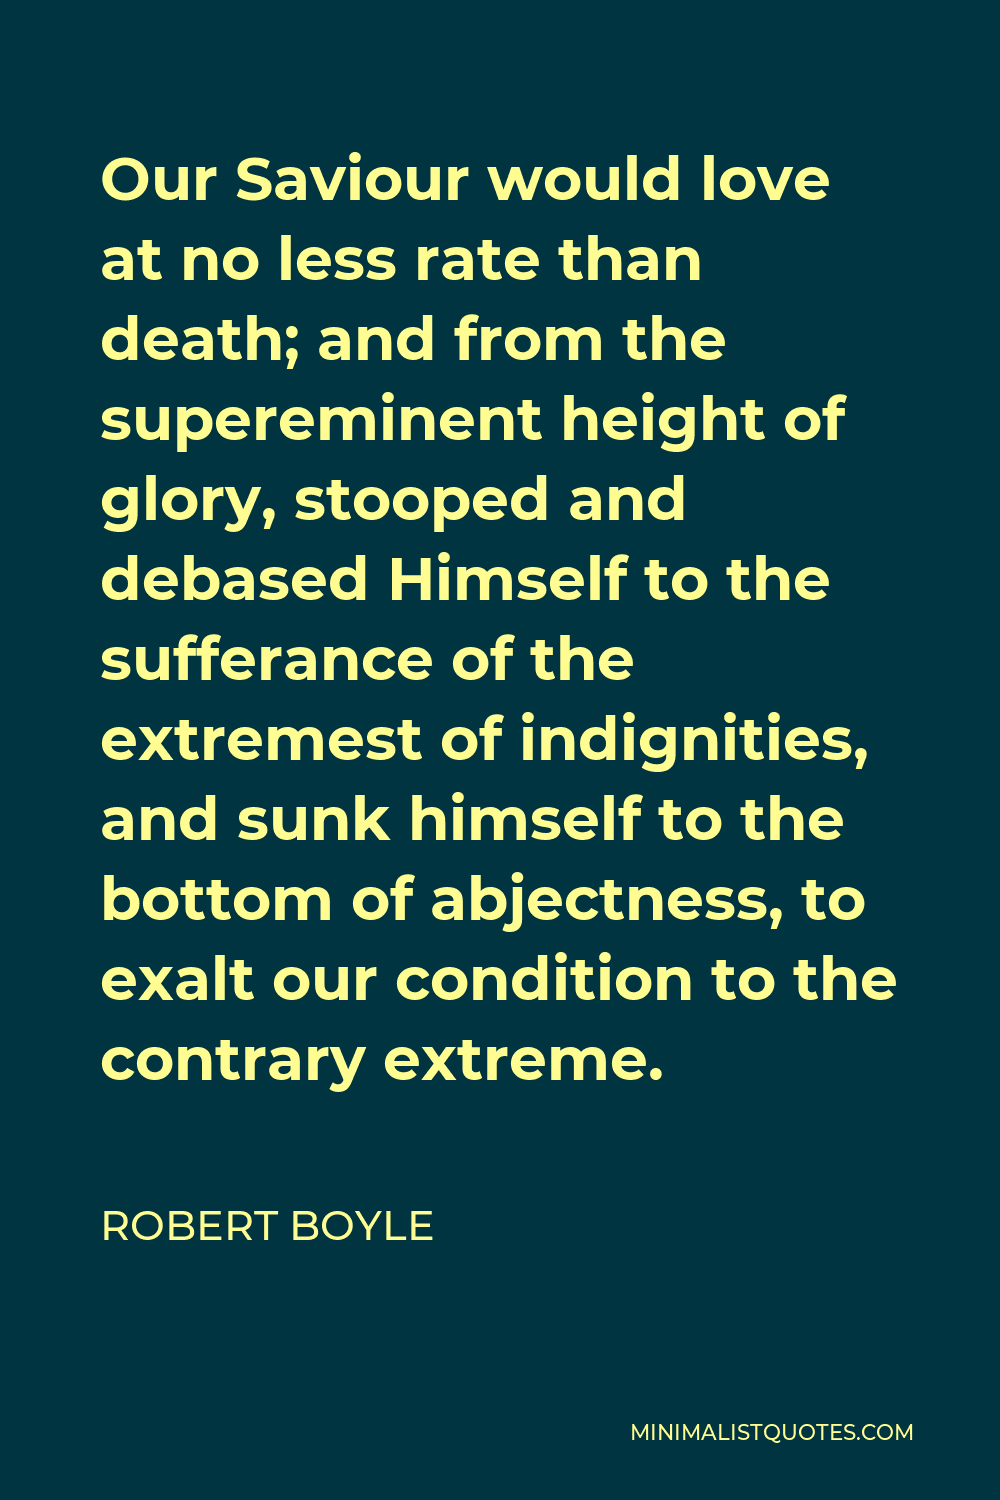 Robert Boyle Quote - Our Saviour would love at no less rate than death; and from the supereminent height of glory, stooped and debased Himself to the sufferance of the extremest of indignities, and sunk himself to the bottom of abjectness, to exalt our condition to the contrary extreme.